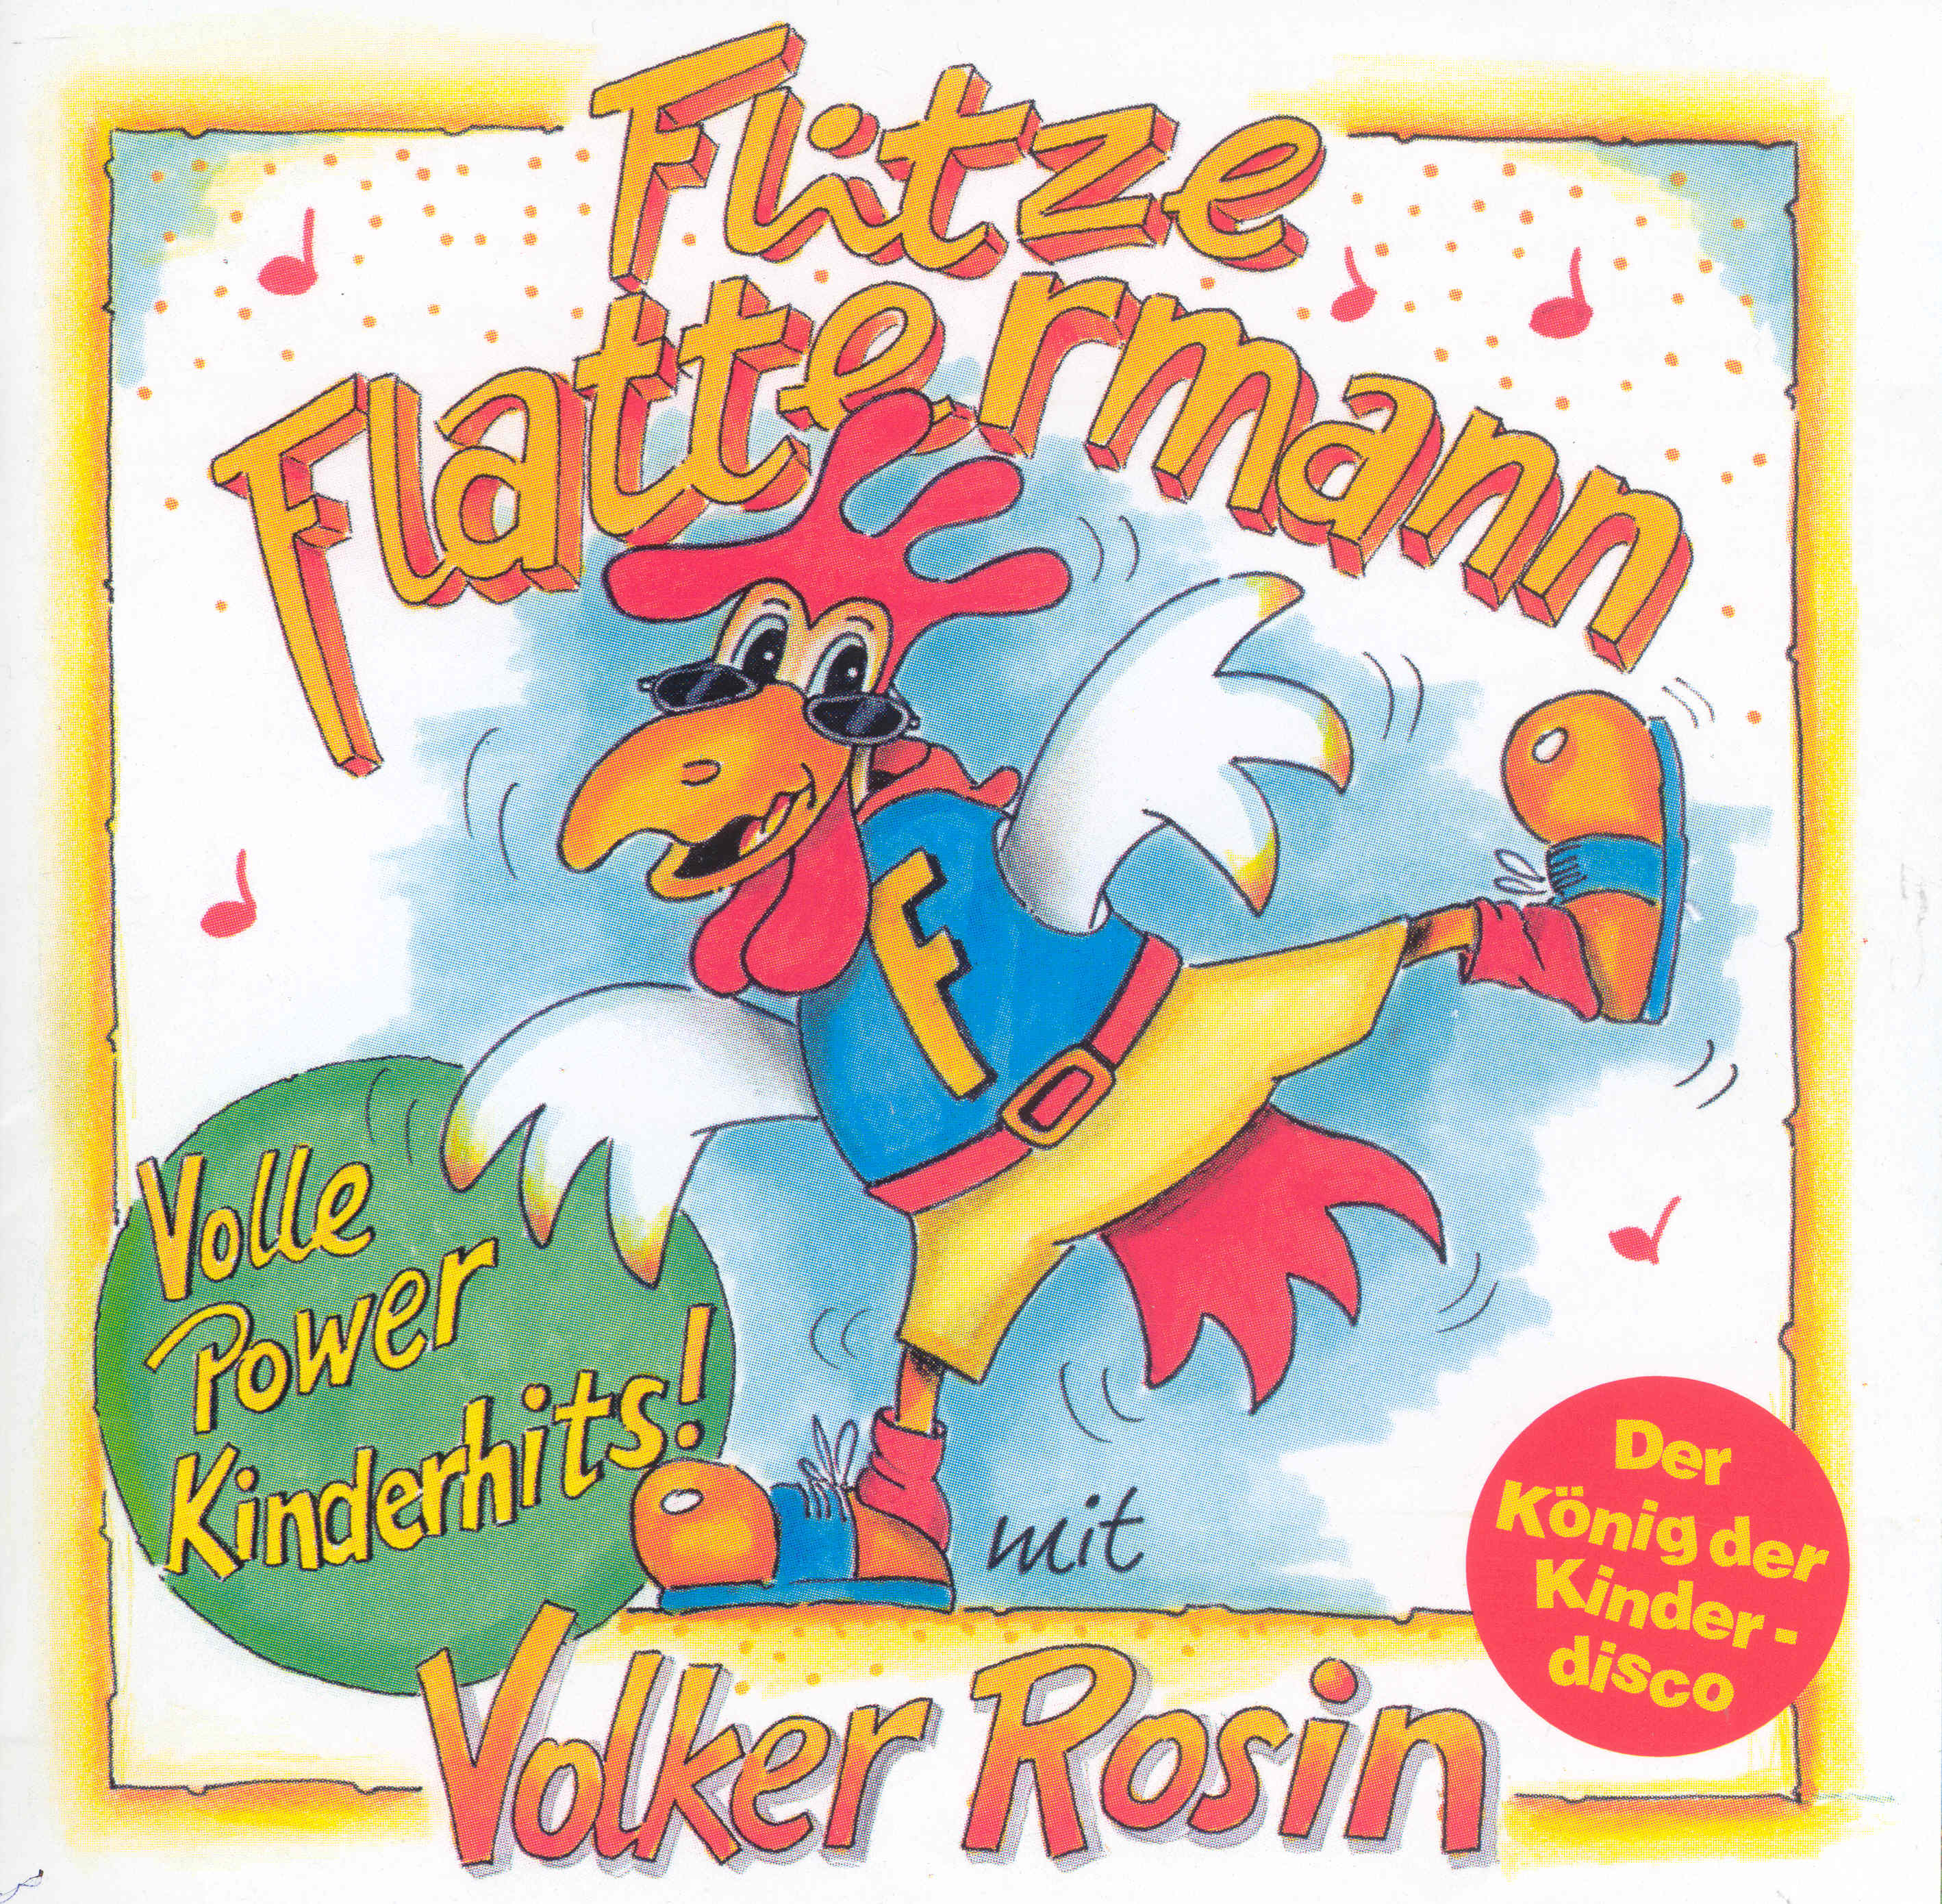 Flitze Flattermann (CD)